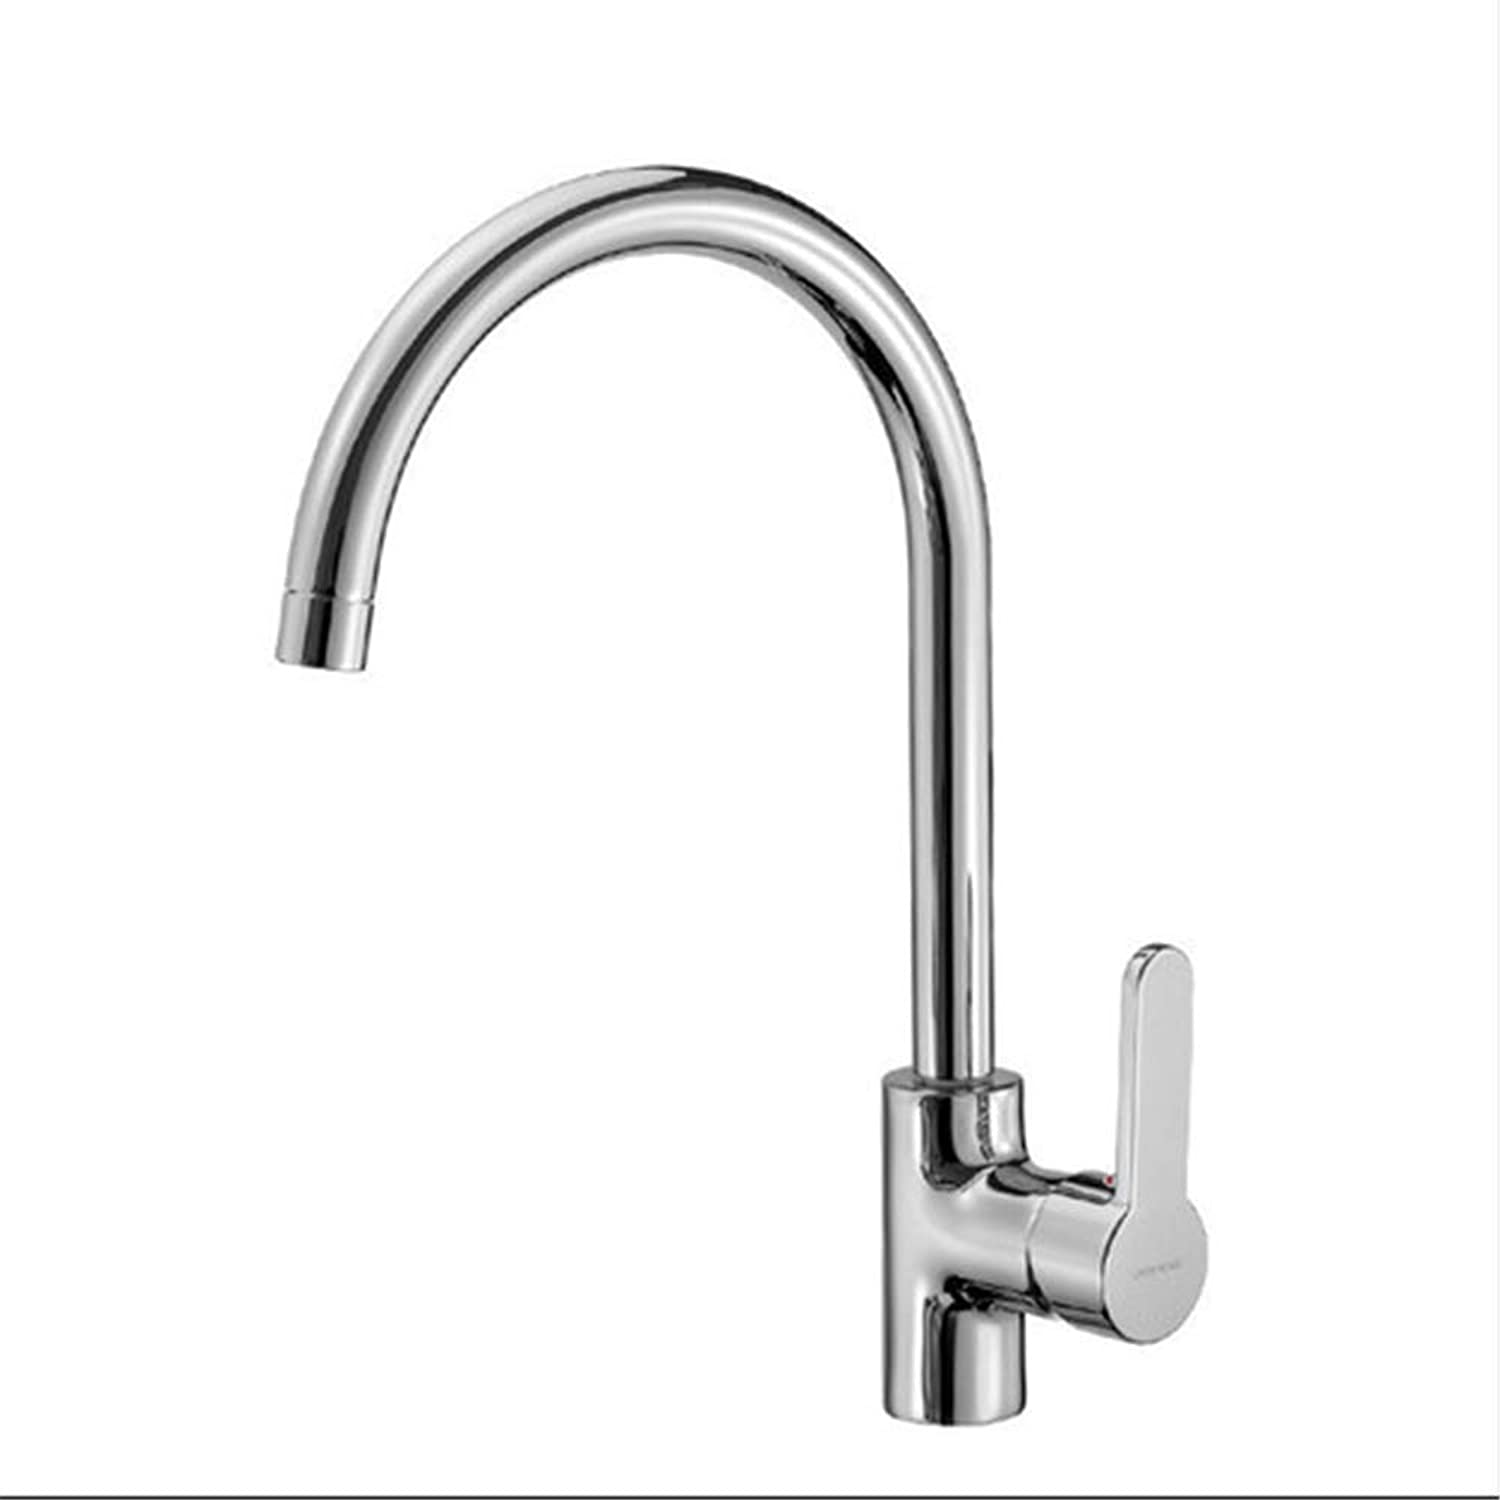 Kitchen Taps Faucetmodern Kitchen Sink Tapsstainless Steelbrass Healthy Hot and Cold Kitchen Pots Faucet